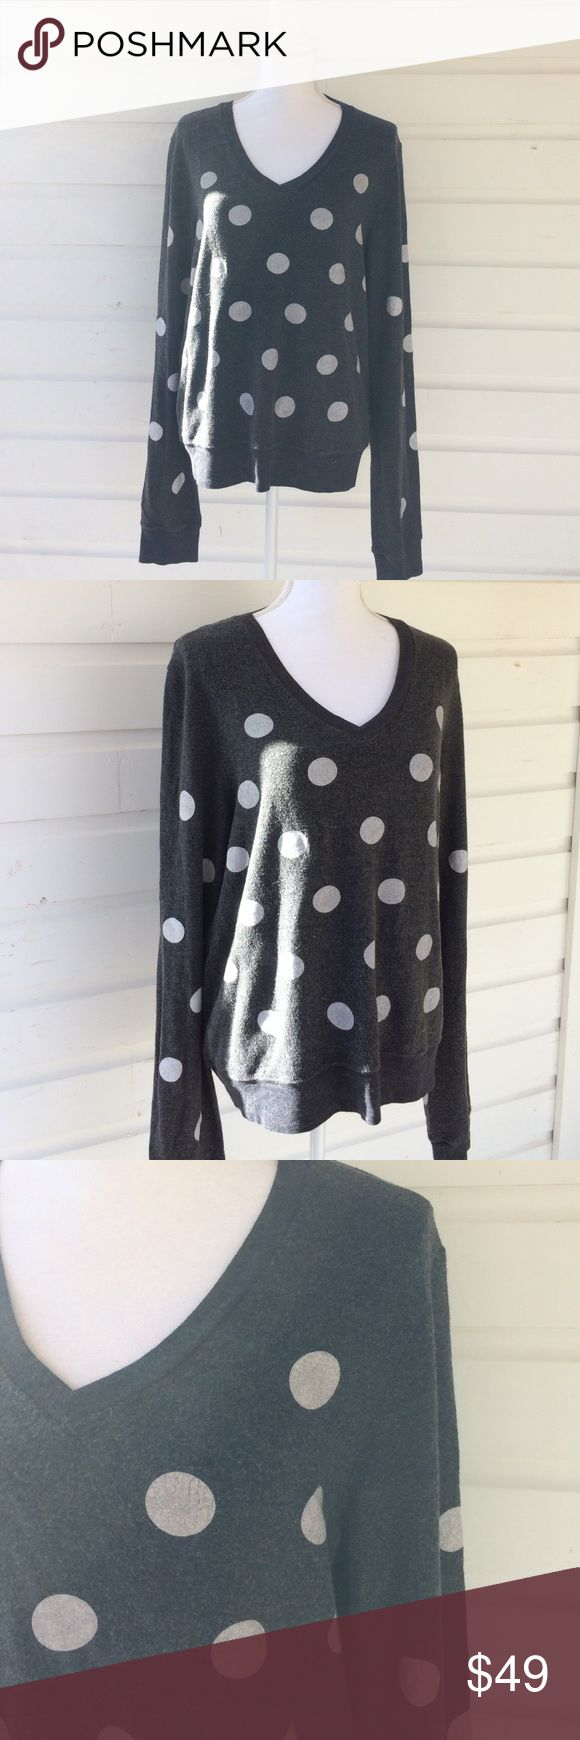 Wildfox Gray White Polka Dot Baggy Beach Jumper Heather Gray sweater plays with your head, is it a sweatshirt or sweater? Screen printed polka dots with minor cracking but looks intentional. Oversized and slouchy. Made in USA. Rayon/Poly/Spandex Blend Wildfox Tops